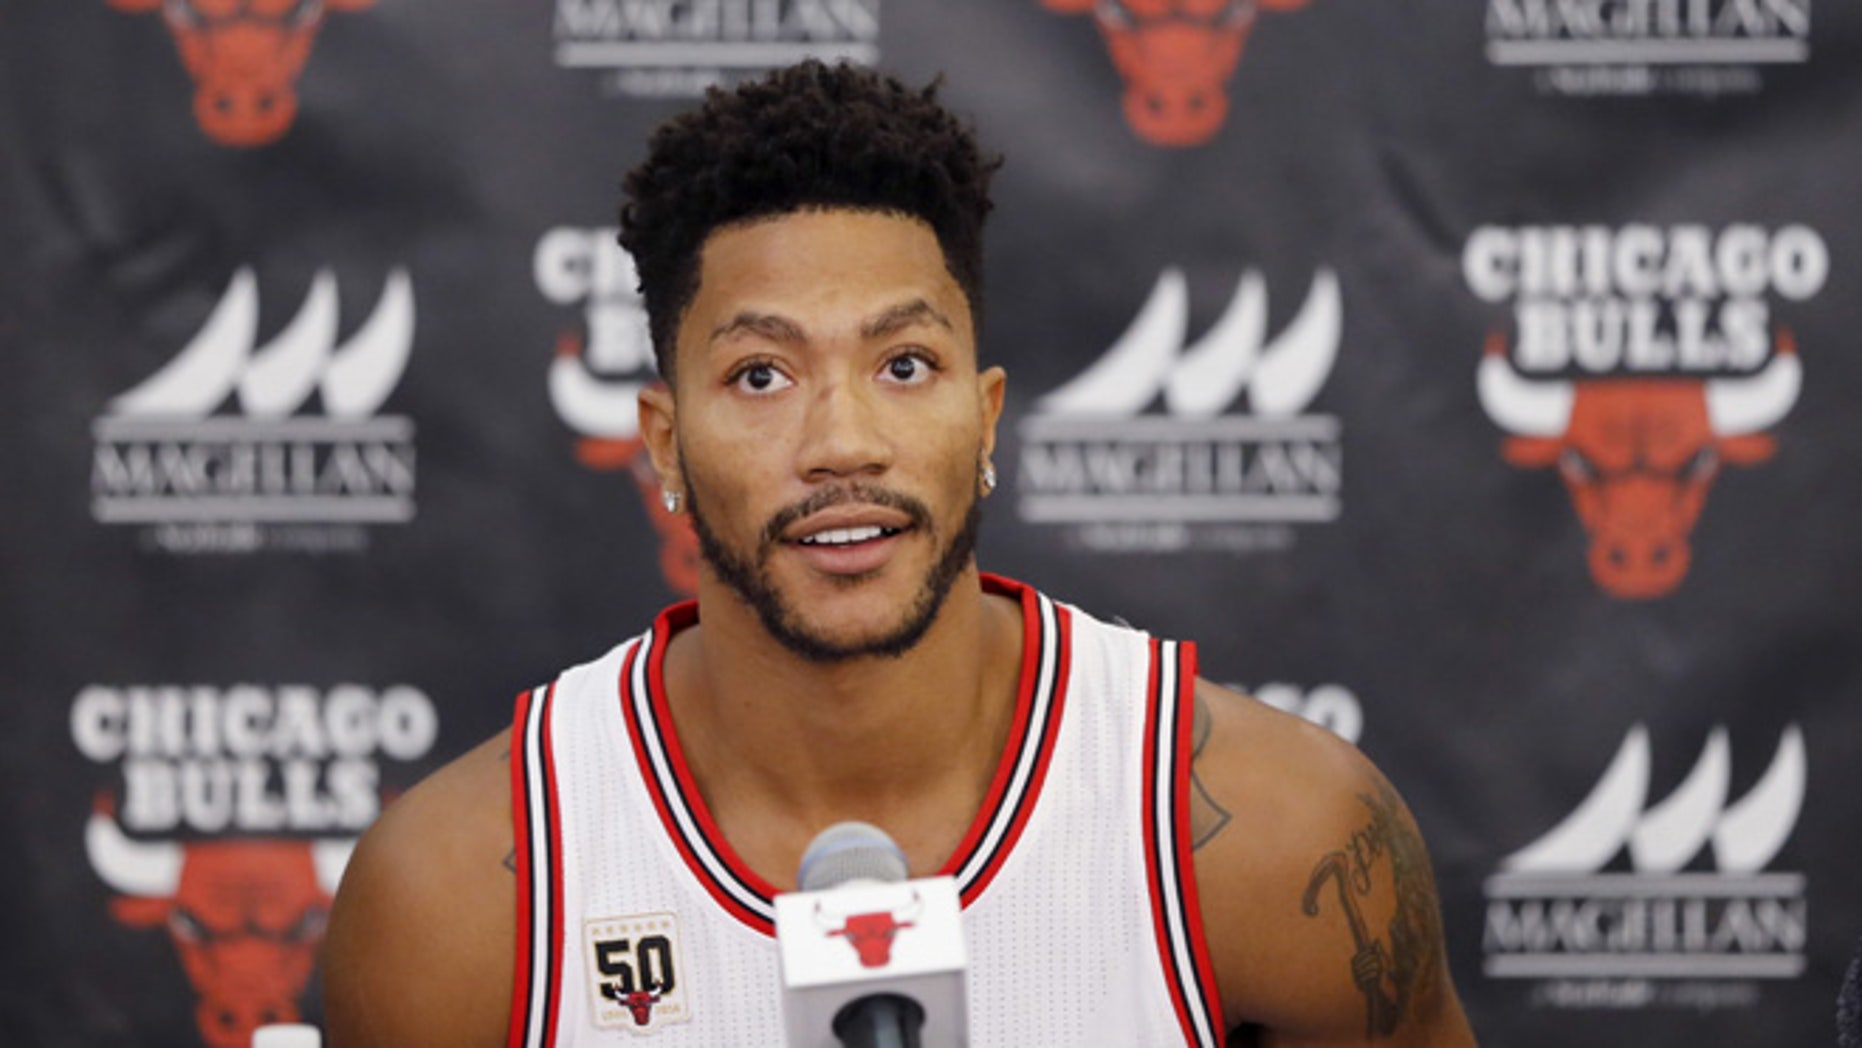 FILE - In this Sept. 28, 2015, file photo, Chicago Bulls' Derrick Rose sits down for an NBA basketball media day news conference in Chicago. (AP Photo/Charles Rex Arbogast, File)